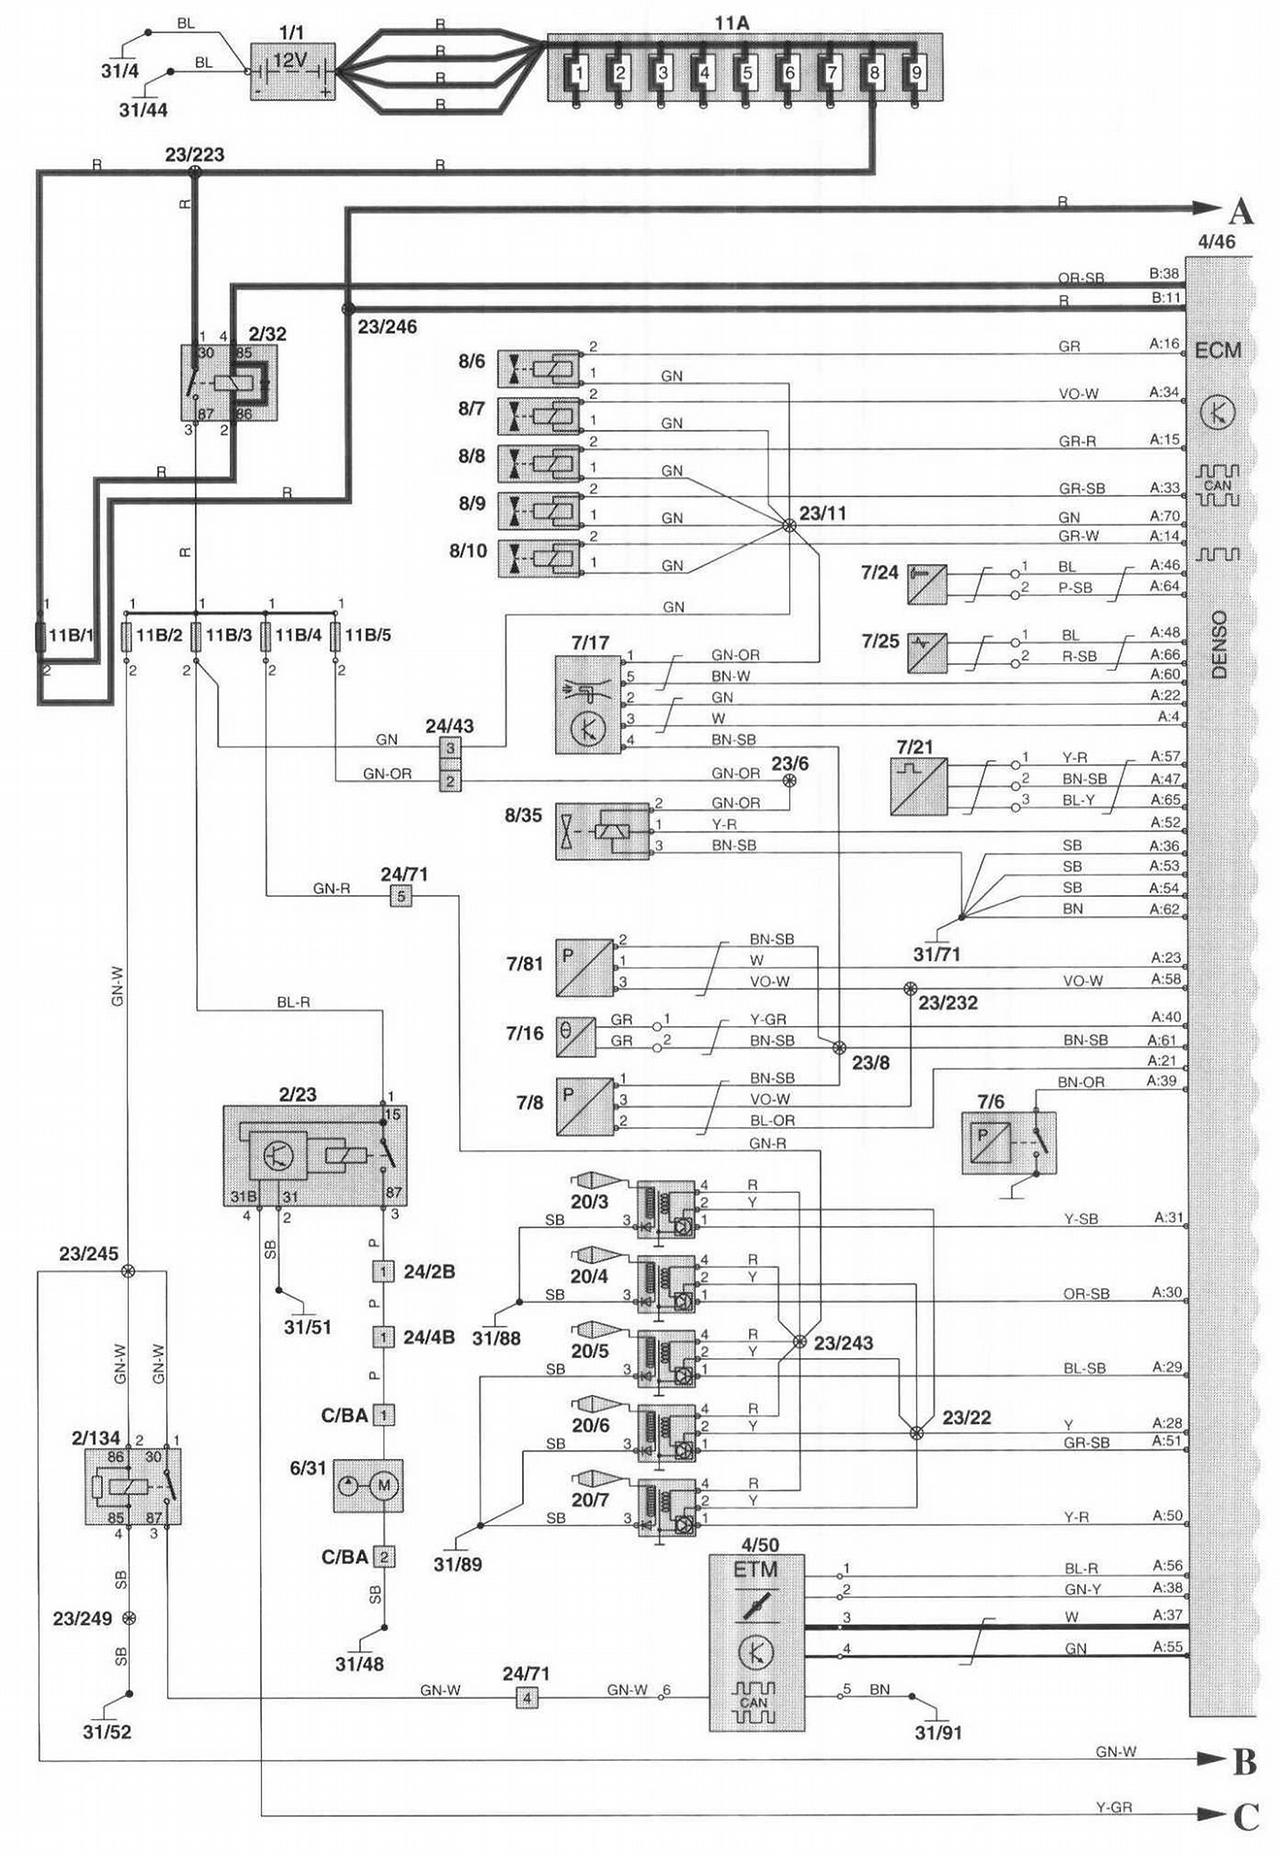 DIAGRAM] Volvo 850 1996 Electrical Wiring Diagram Instant FULL Version HD  Quality Diagram Instant - M40SCHEMATIC505.CONCESSIONARIABELOGISENIGALLIA.ITconcessionariabelogisenigallia.it